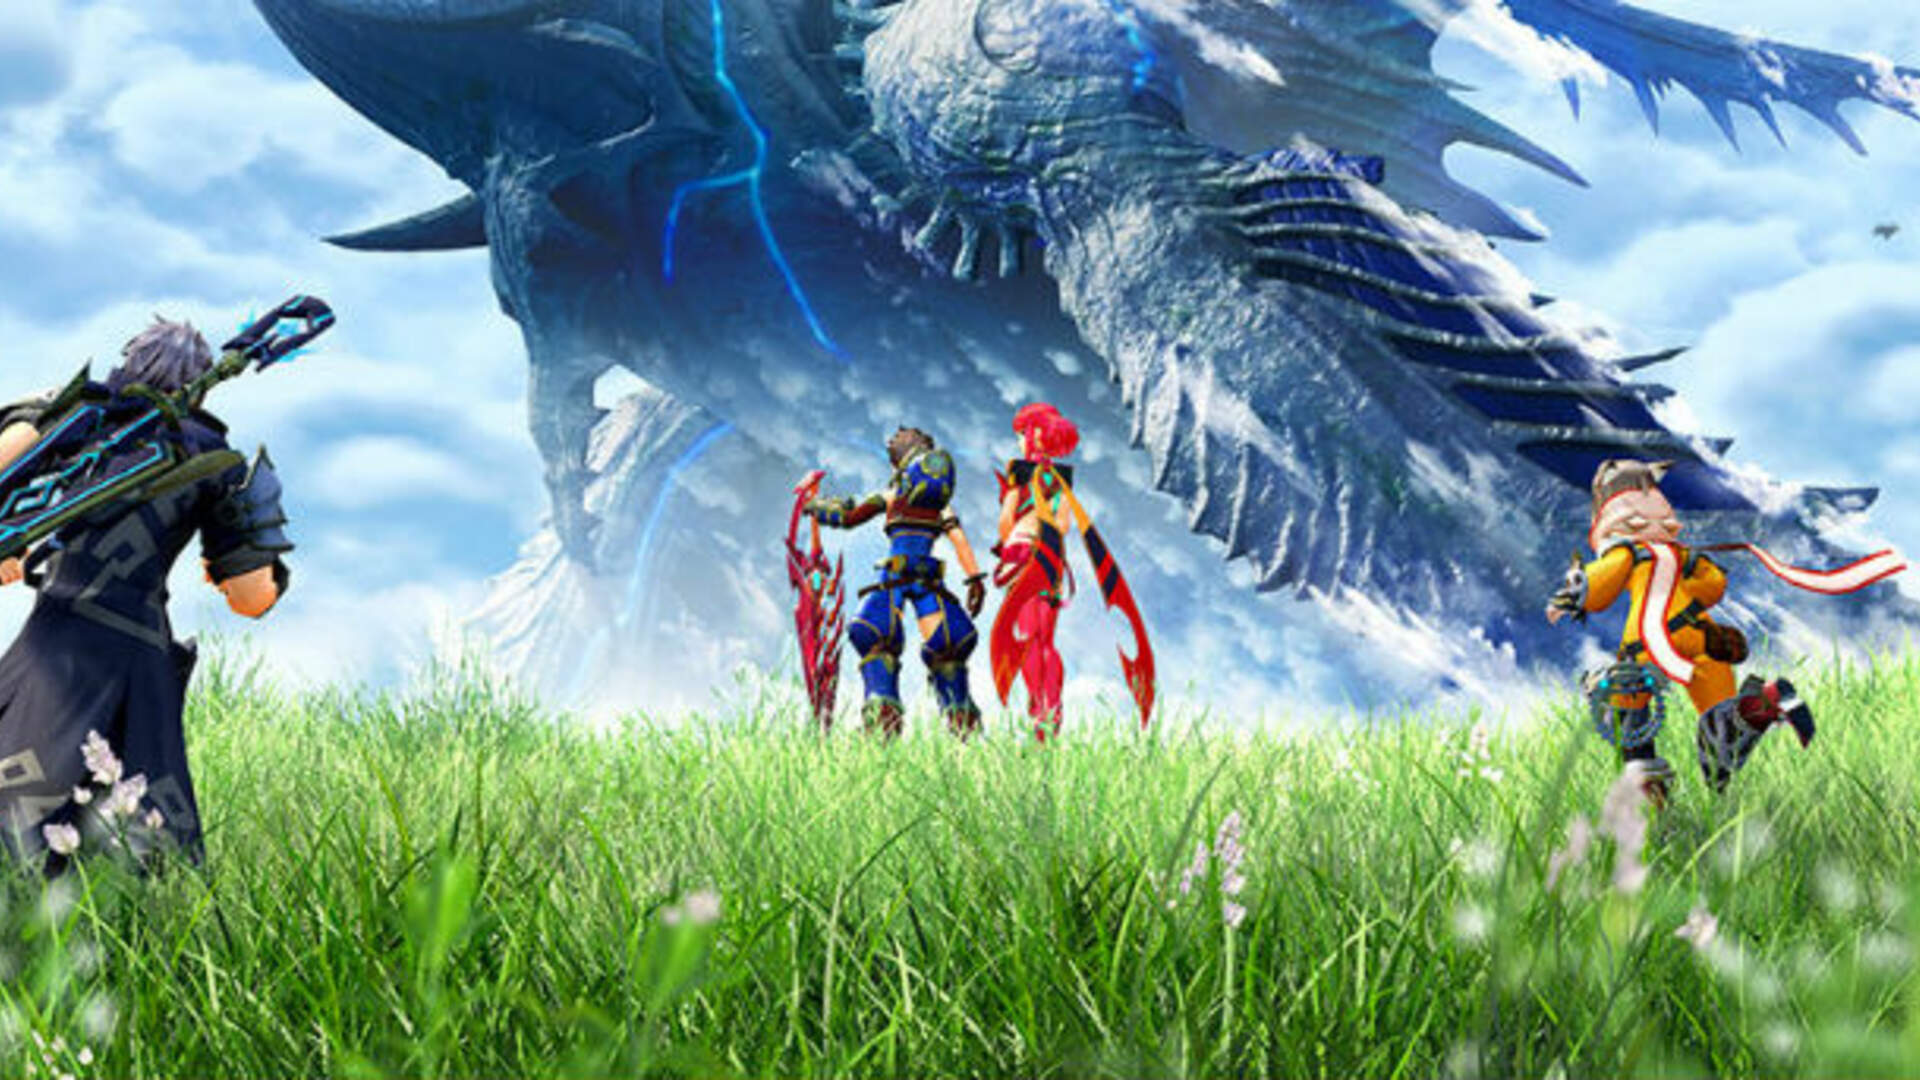 Xenoblade Chronicles 2 Puts Fans Back Where They Belong: On the Shoulders of Giants